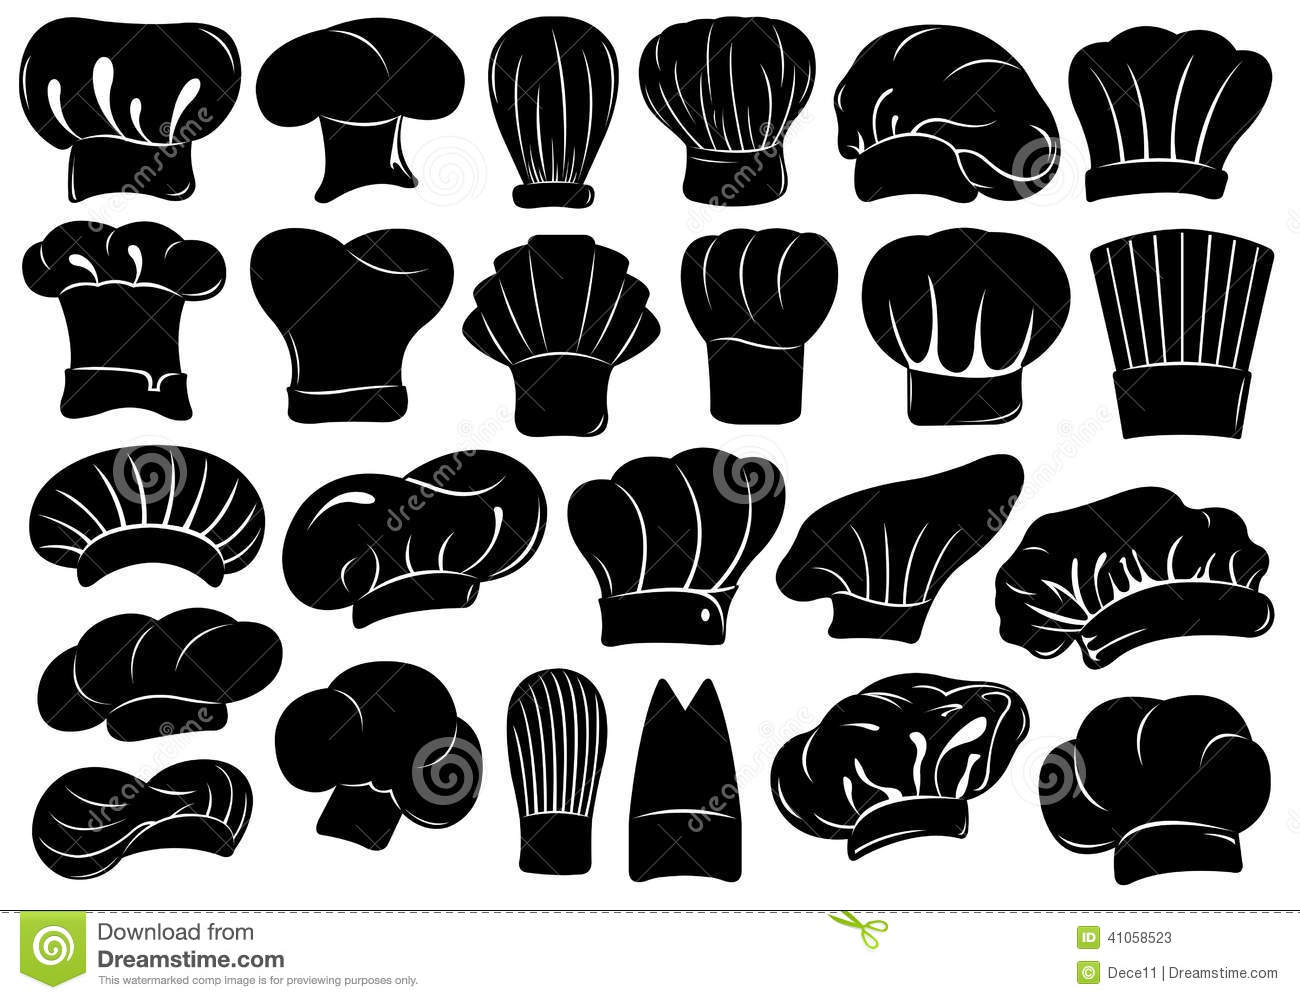 29a96d7c Set Of Different Chef Hats Isolated Stock Vector - Illustration of ...